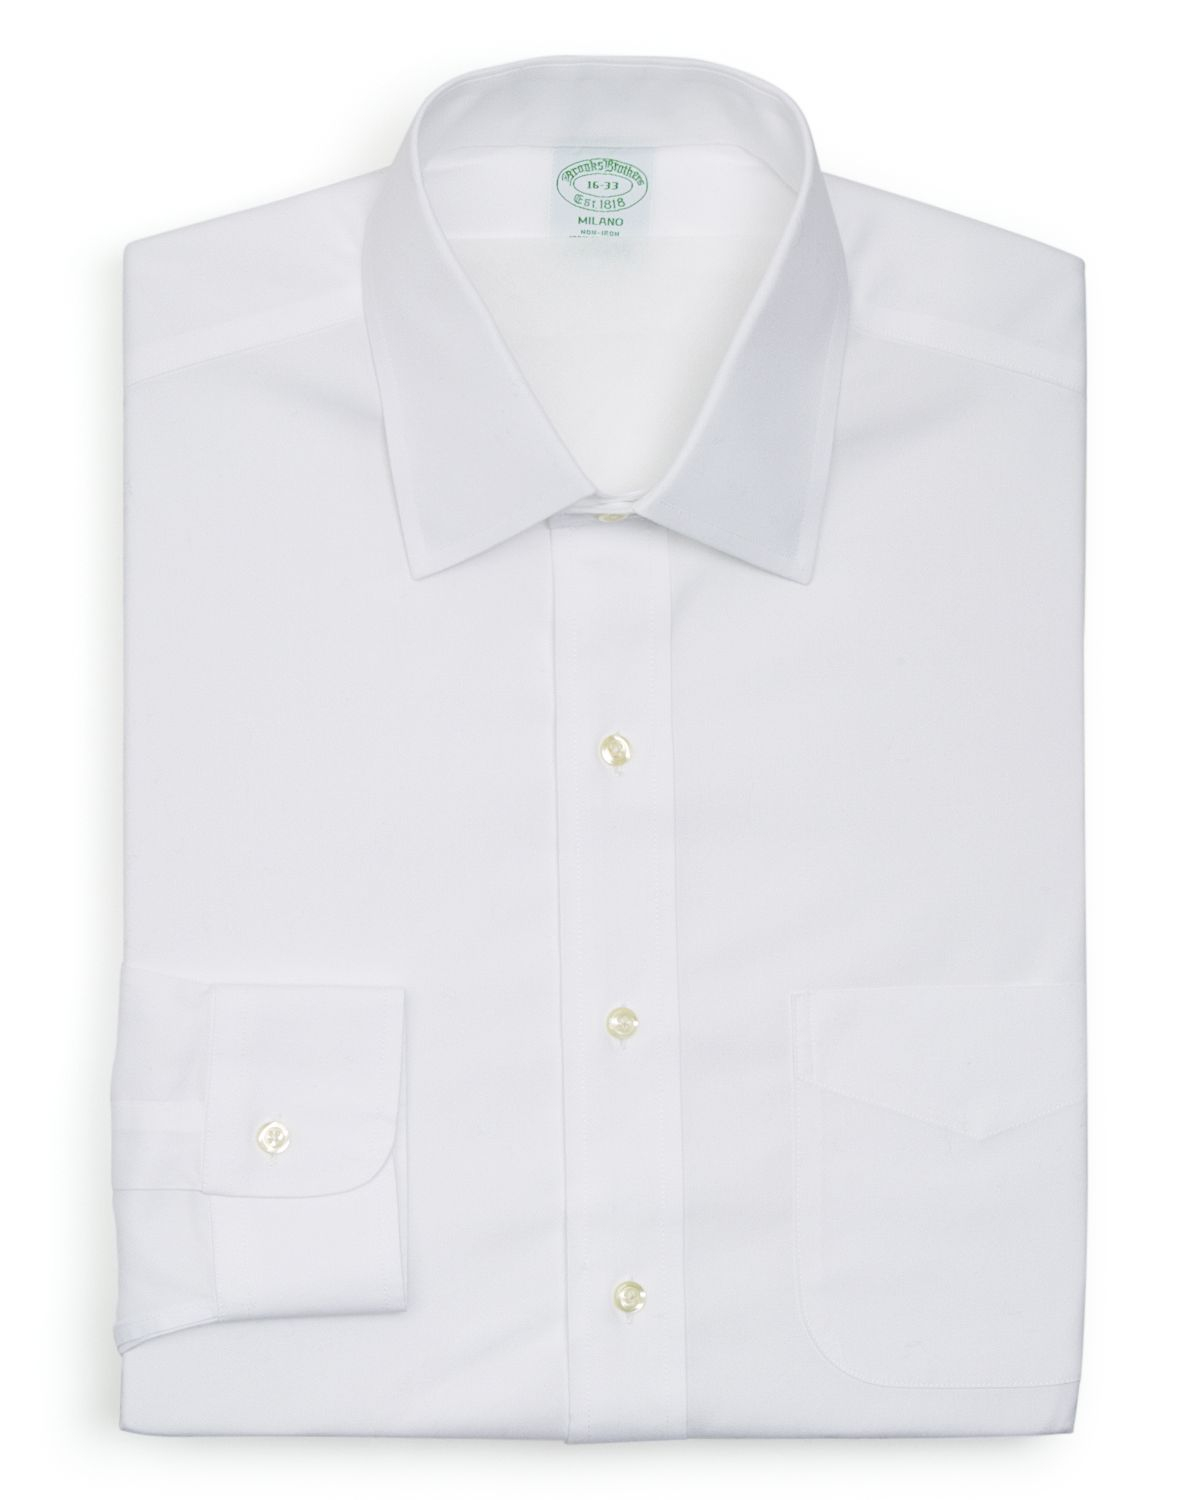 Brooks brothers solid non iron dress shirt milano fit in for Brooks brothers dress shirt fit